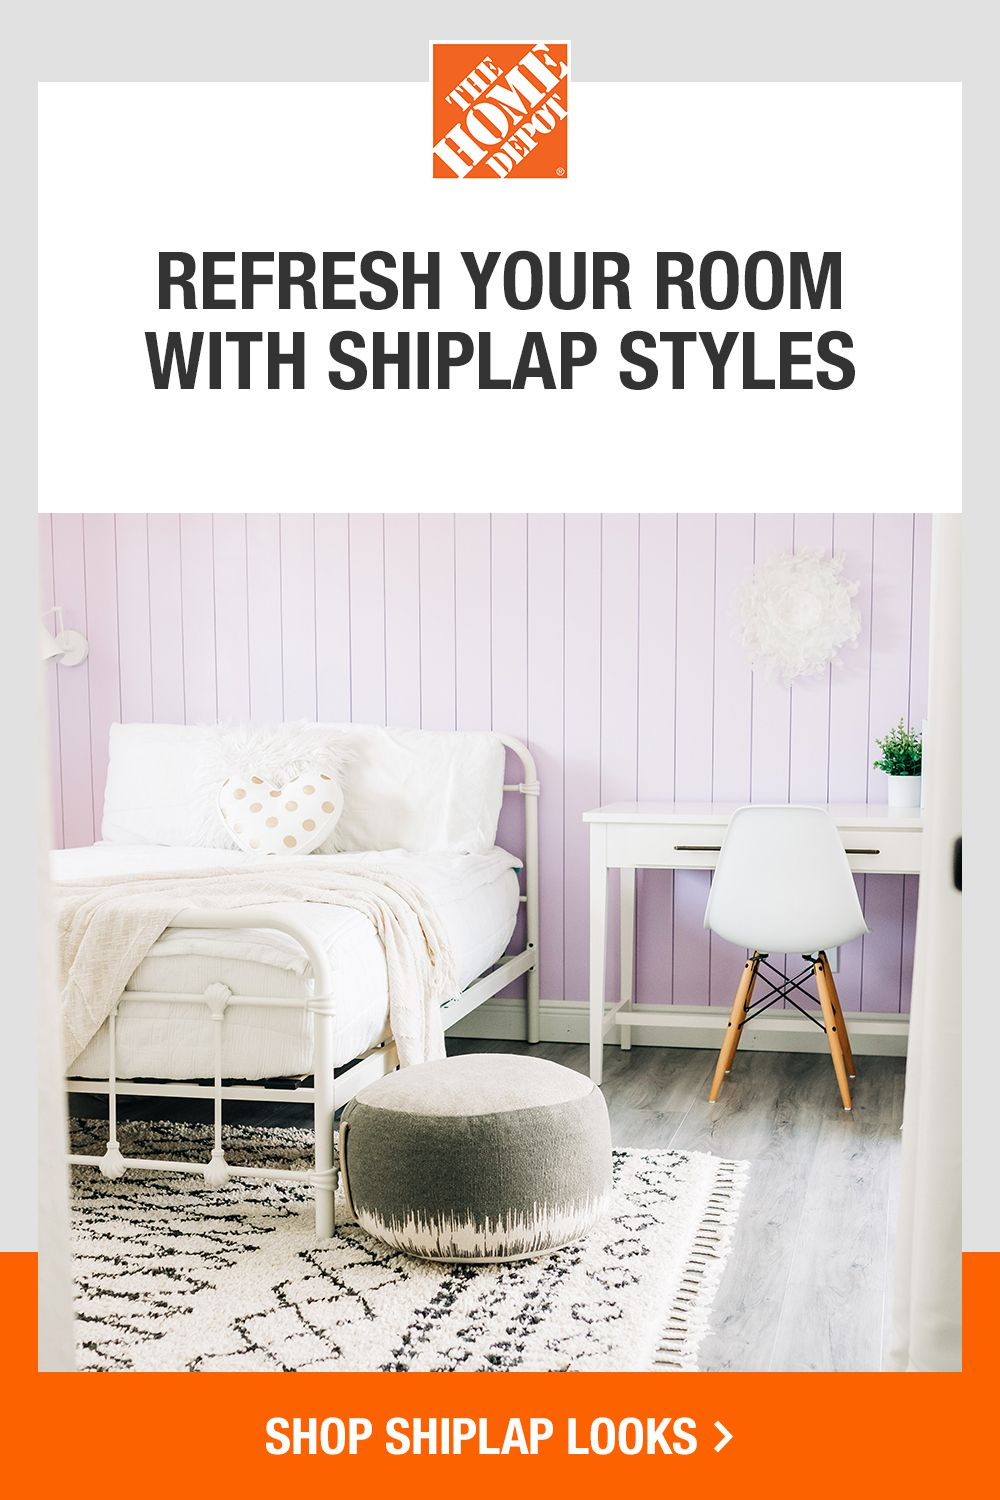 Explore our wide selection of shiplap looks, and rent the tools to finish your DIY project. Find how-to guides to complete your project like a pro. Tap to shop shiplap looks at The Home Depot.